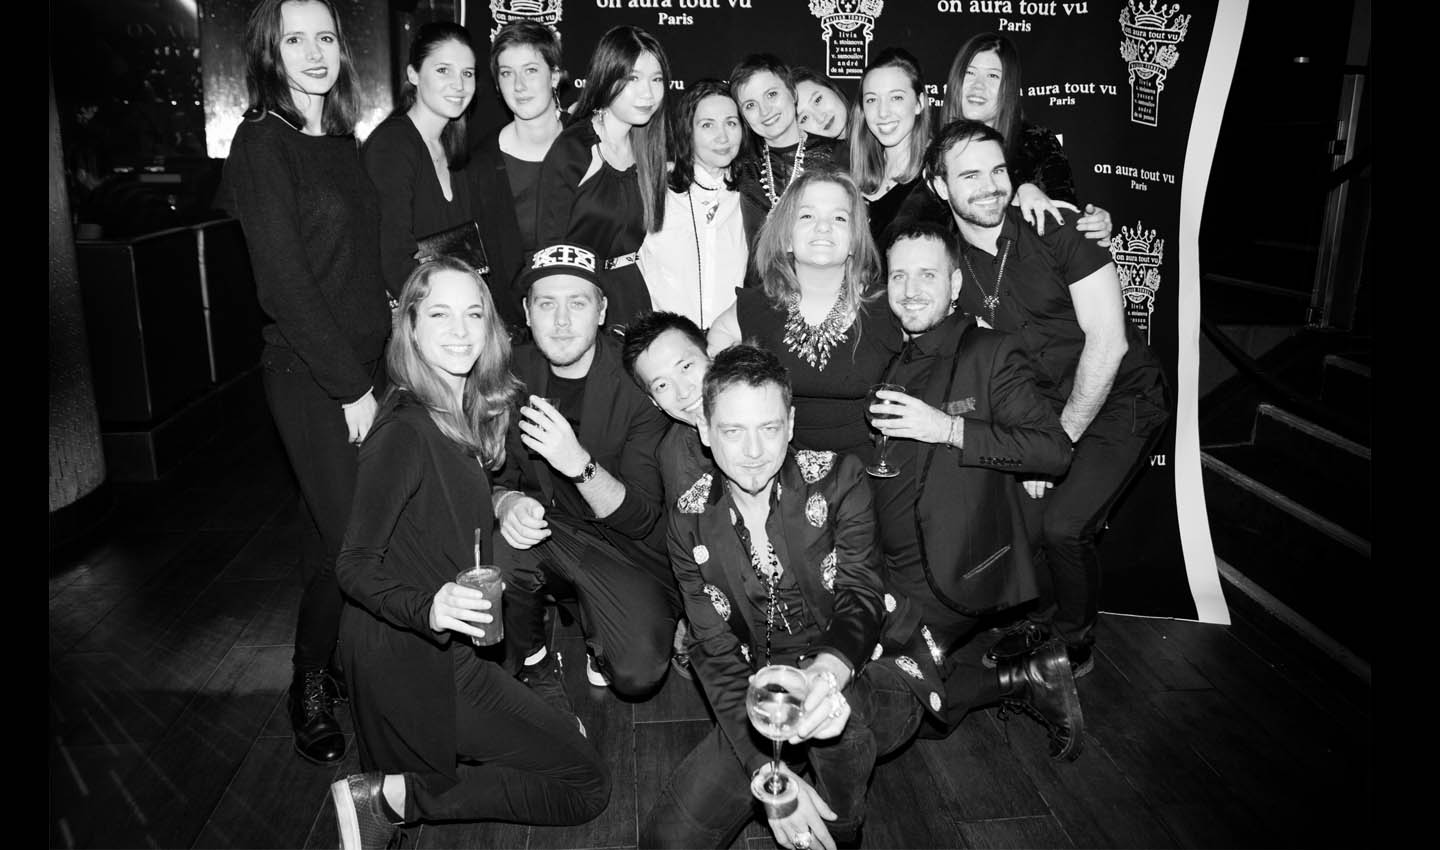 on aura tout vu aftershow couture ss16 aux Queen club paris staff